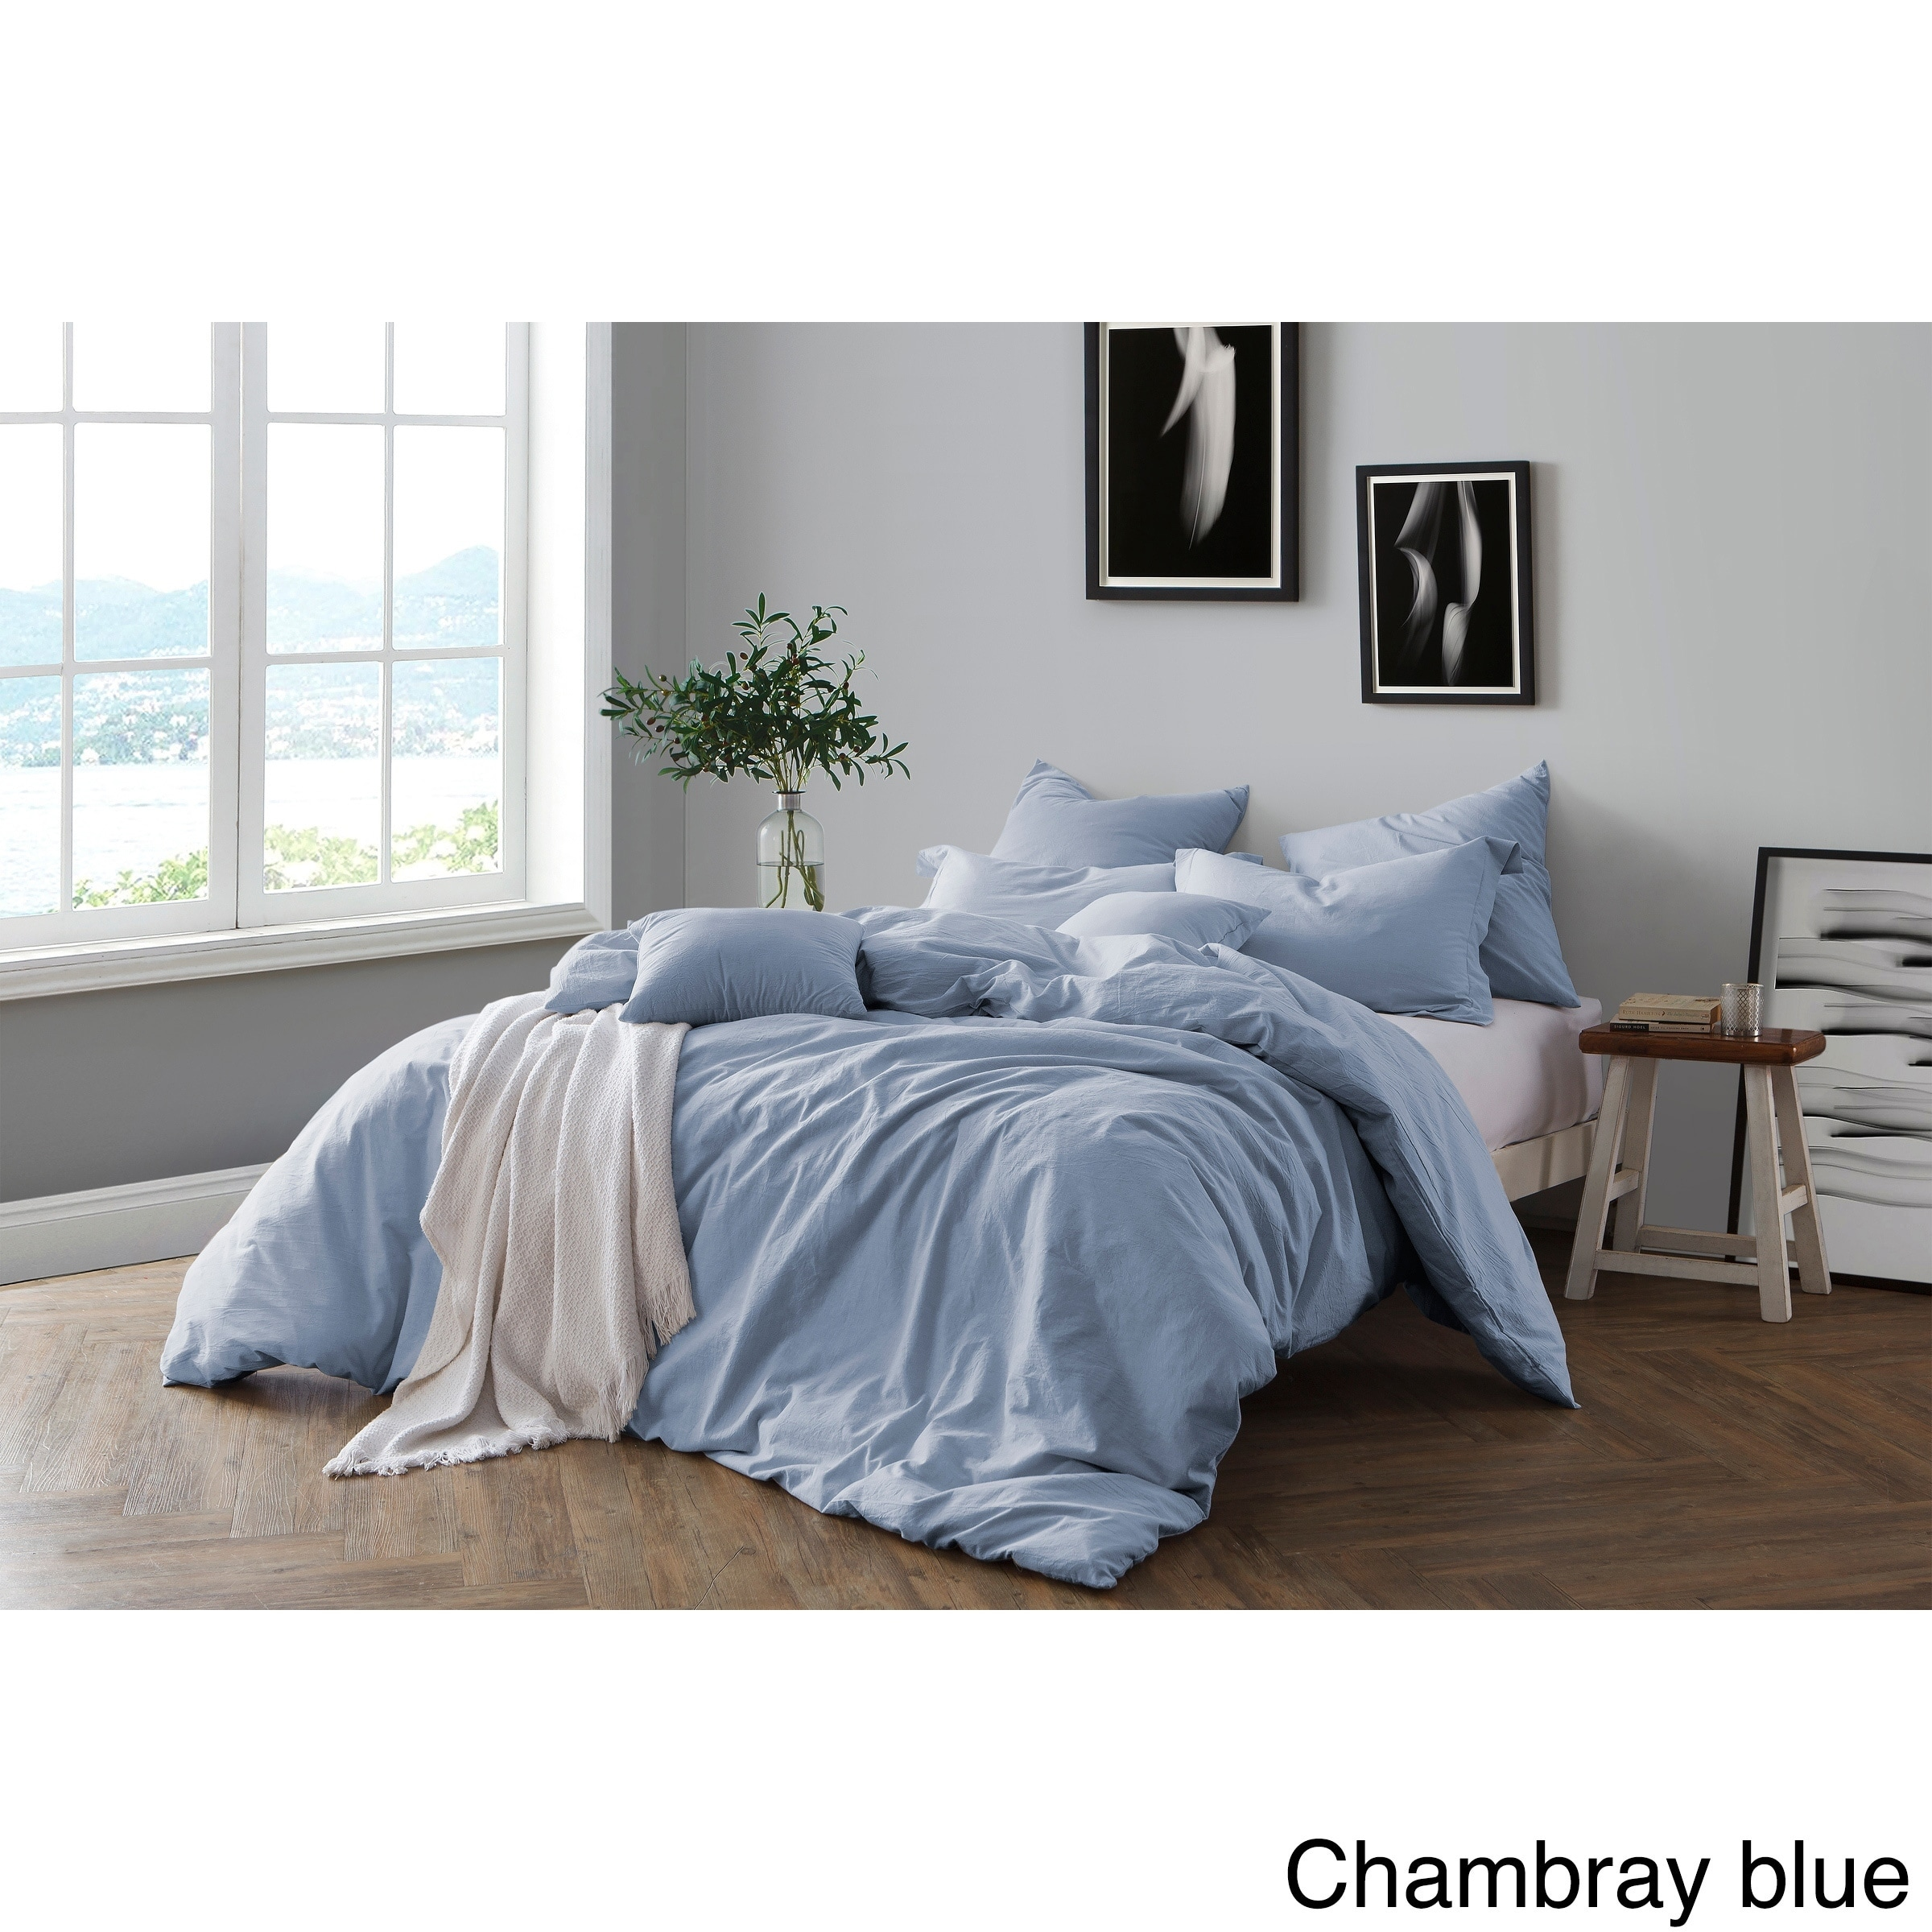 bed cover sets. Shop All Natural Prewashed Yarn Dye 100% Cotton Premium Wrinkled Look Chambray Duvet Cover Set - On Sale Free Shipping Today Overstock.com 18653687 Bed Sets